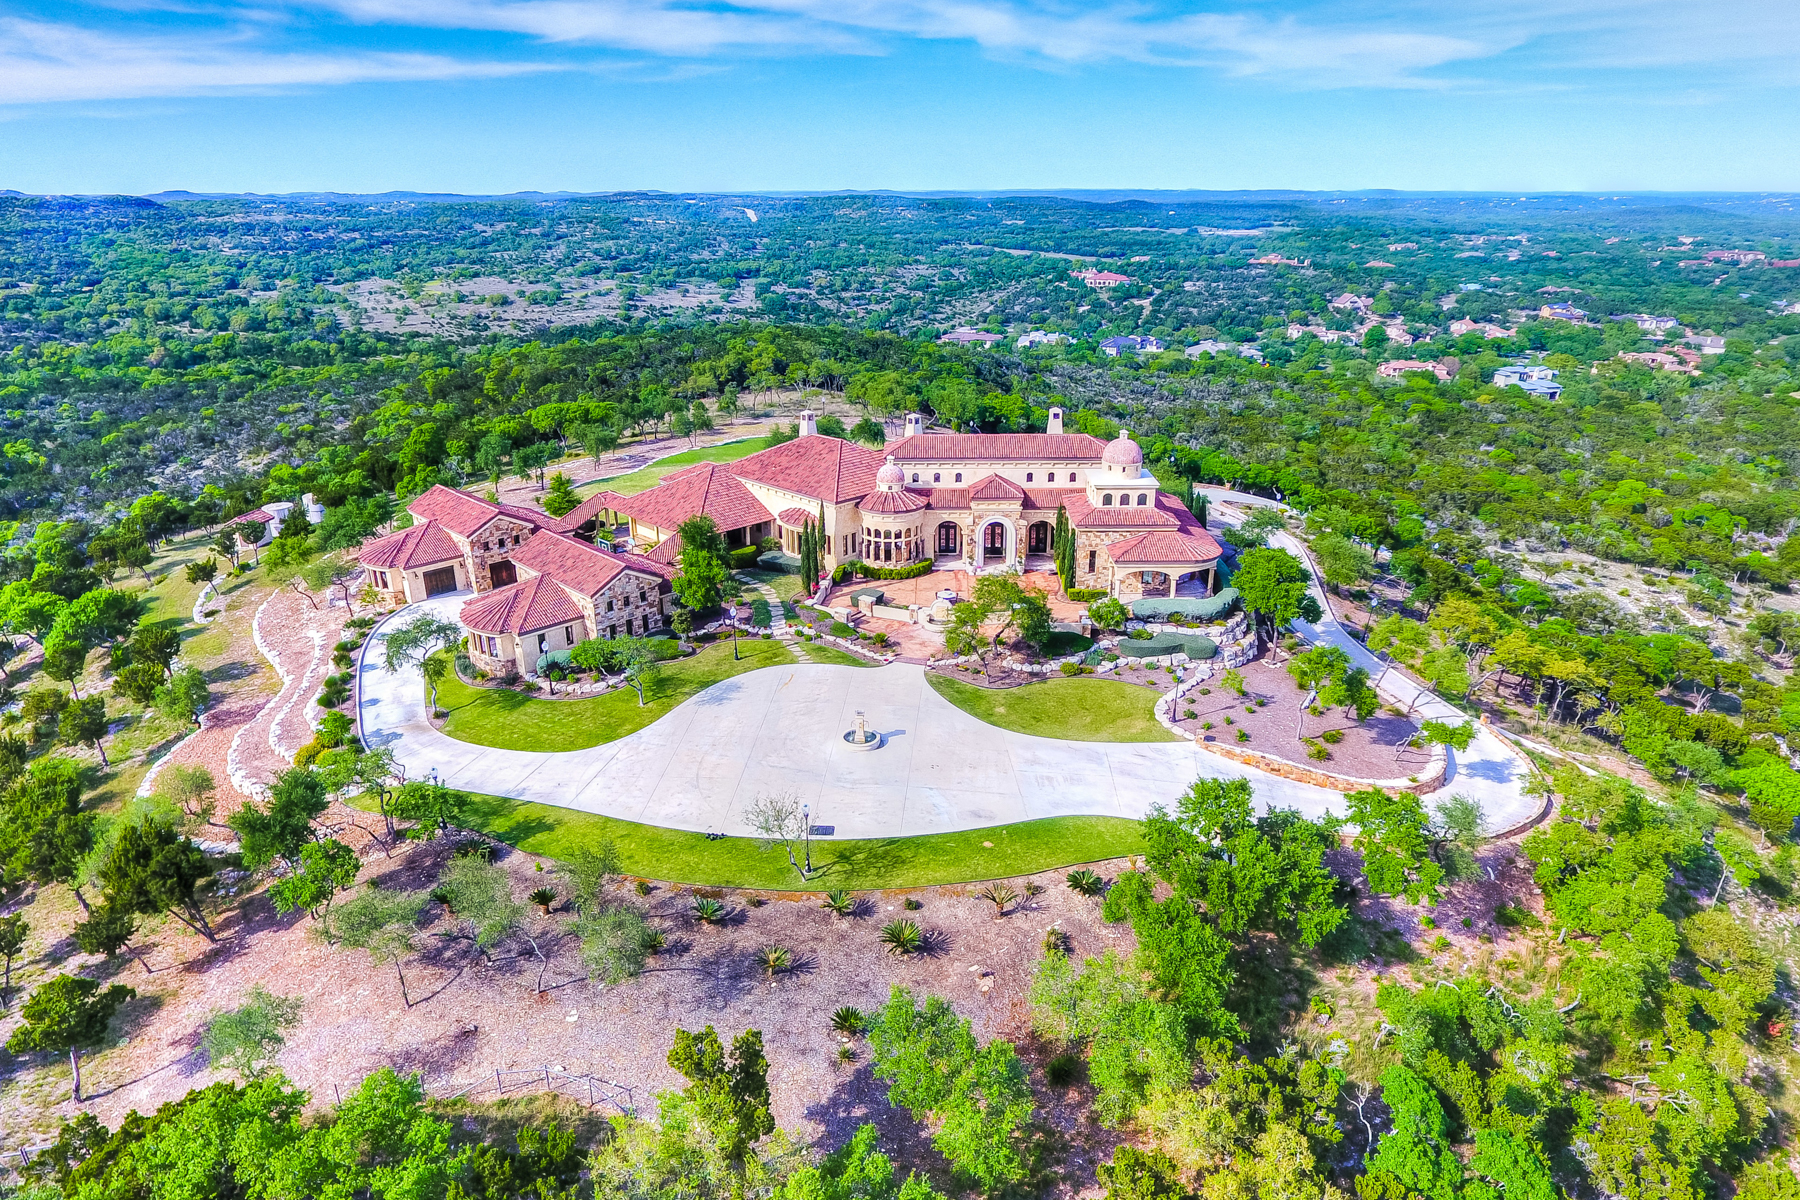 Single Family Home for Sale at Palazzo Paraiso/An Estate of Exceptional Grandeur 24818 Miranda Ridge Boerne, Texas 78006 United States